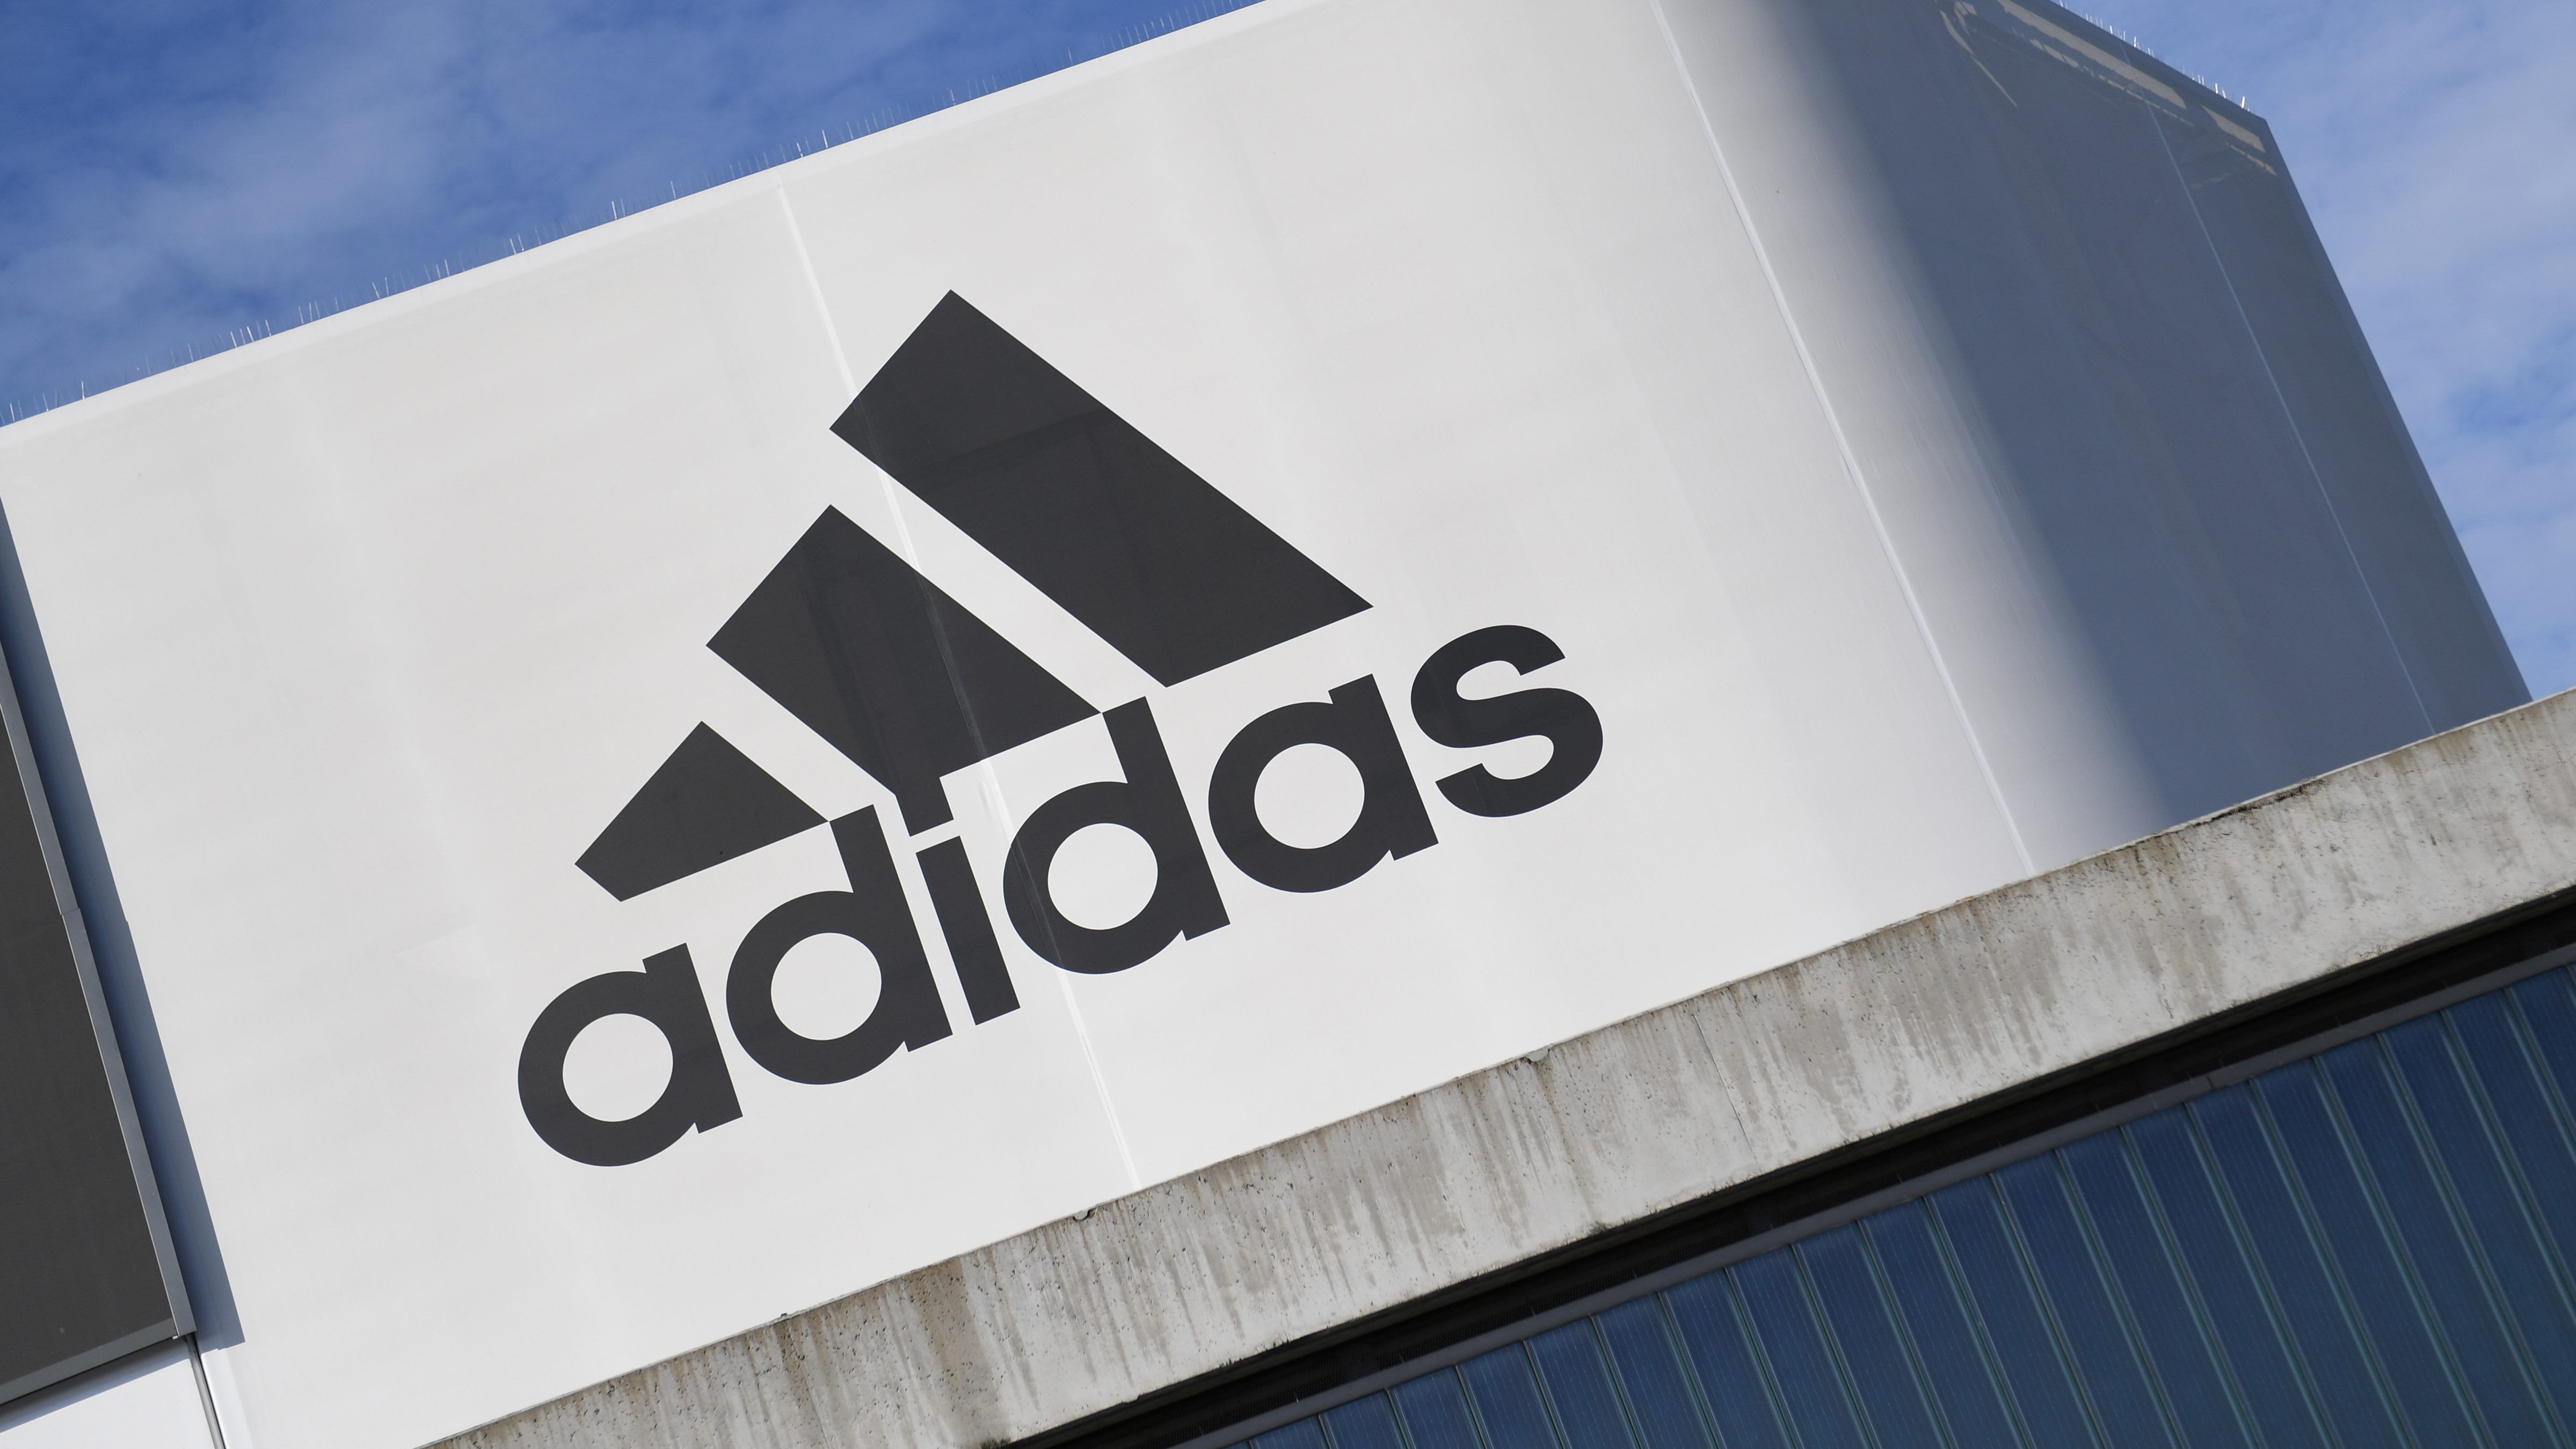 A black Adidas designer is calling on the company to apologize for its complacency on racism